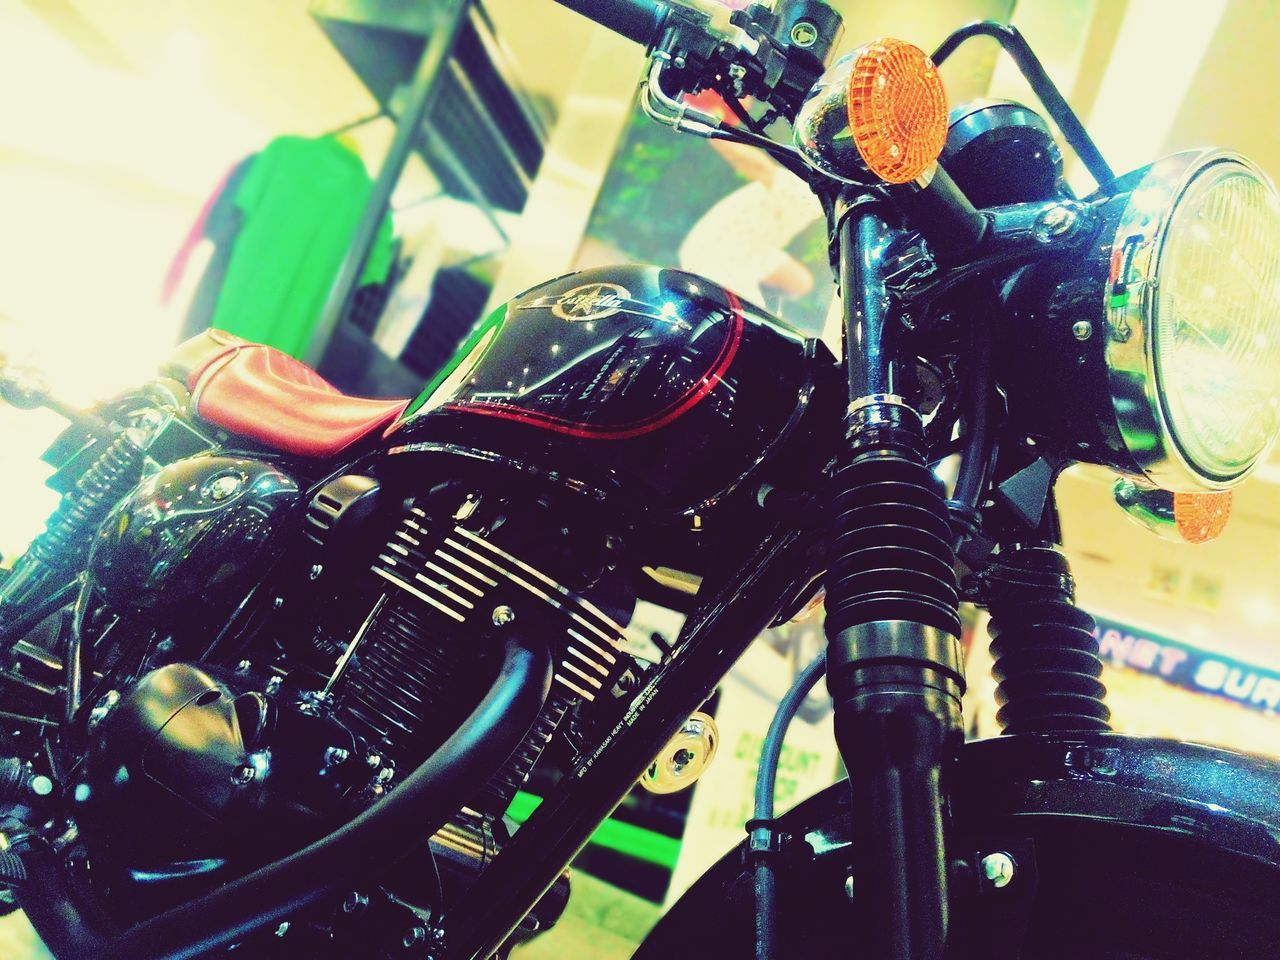 One of my fav pic.. Check This Out Taking Photos Motorcycle Engine Kawasaki Hello World Awesome Exploring EyeEm EyeEm Gallery Eyeemphotography Motorcycle Photography Motorbikes Manado Town Square Mantos Auto Contest 2015 Throwback ✌ Mall